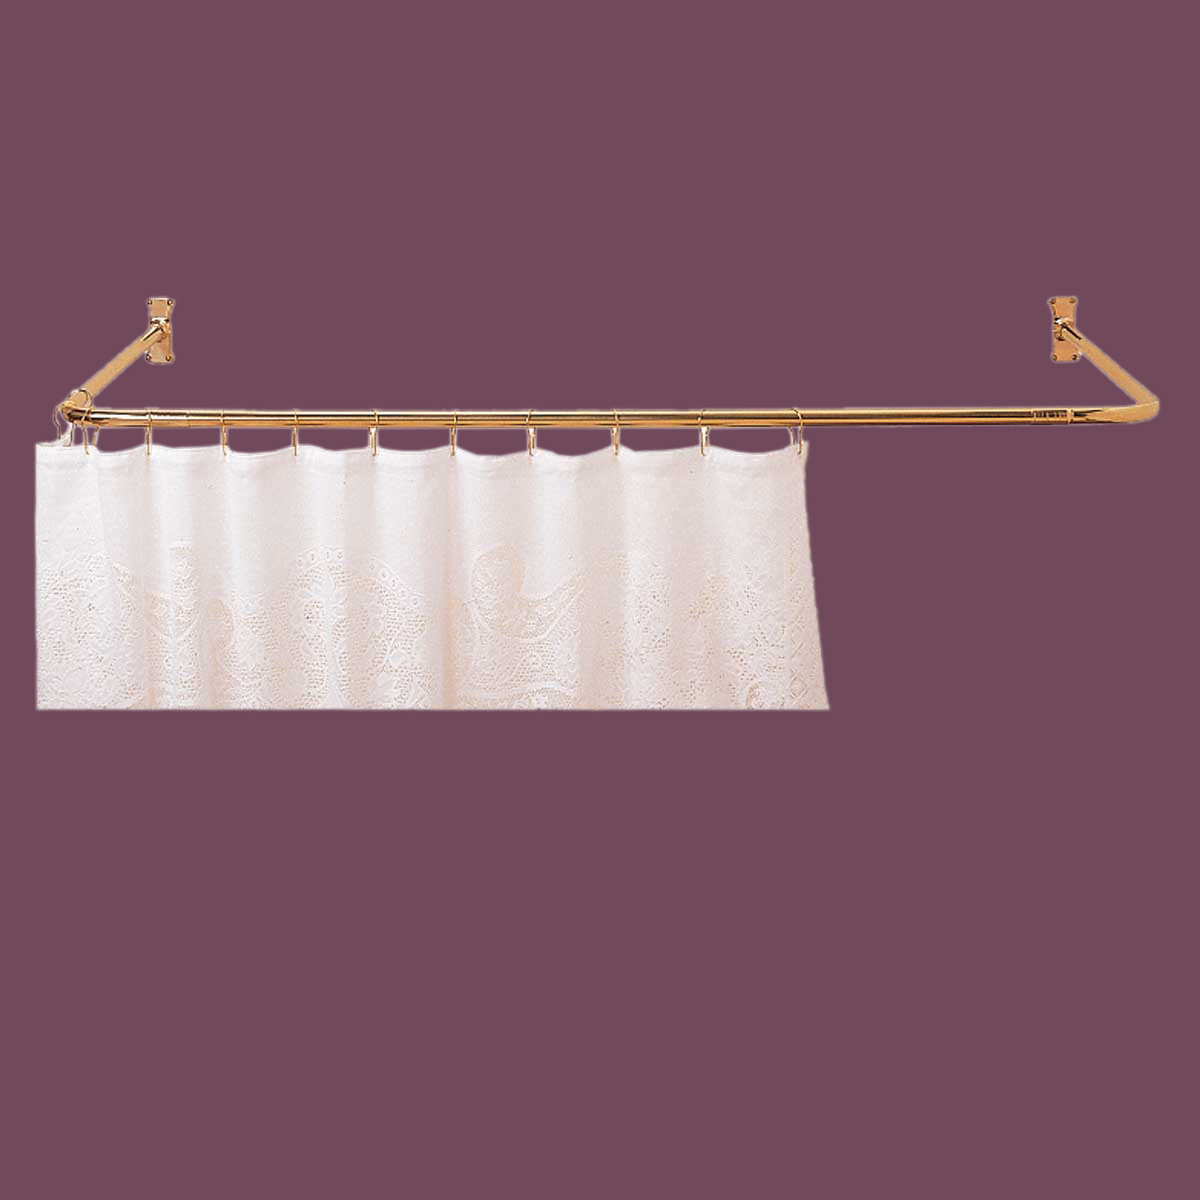 Delightful U003cPREu003eShower Curtain Rod Bright Solid Brass 3 Sided ...